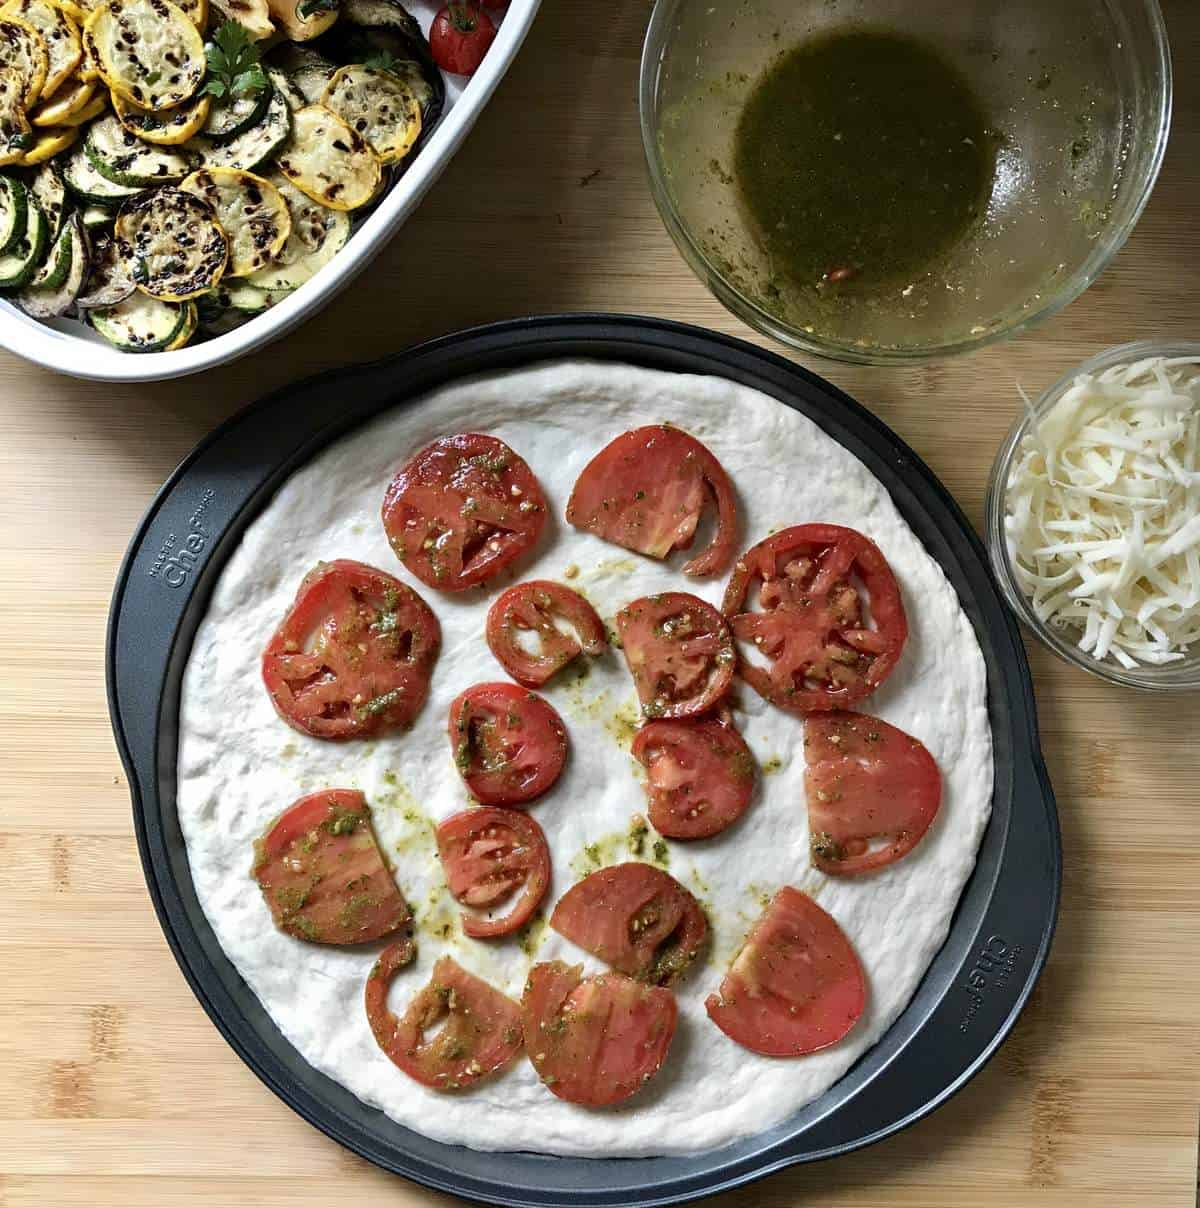 Marinated tomatoes (in basil pesto) on pizza dough creates the base of the salad pizza.